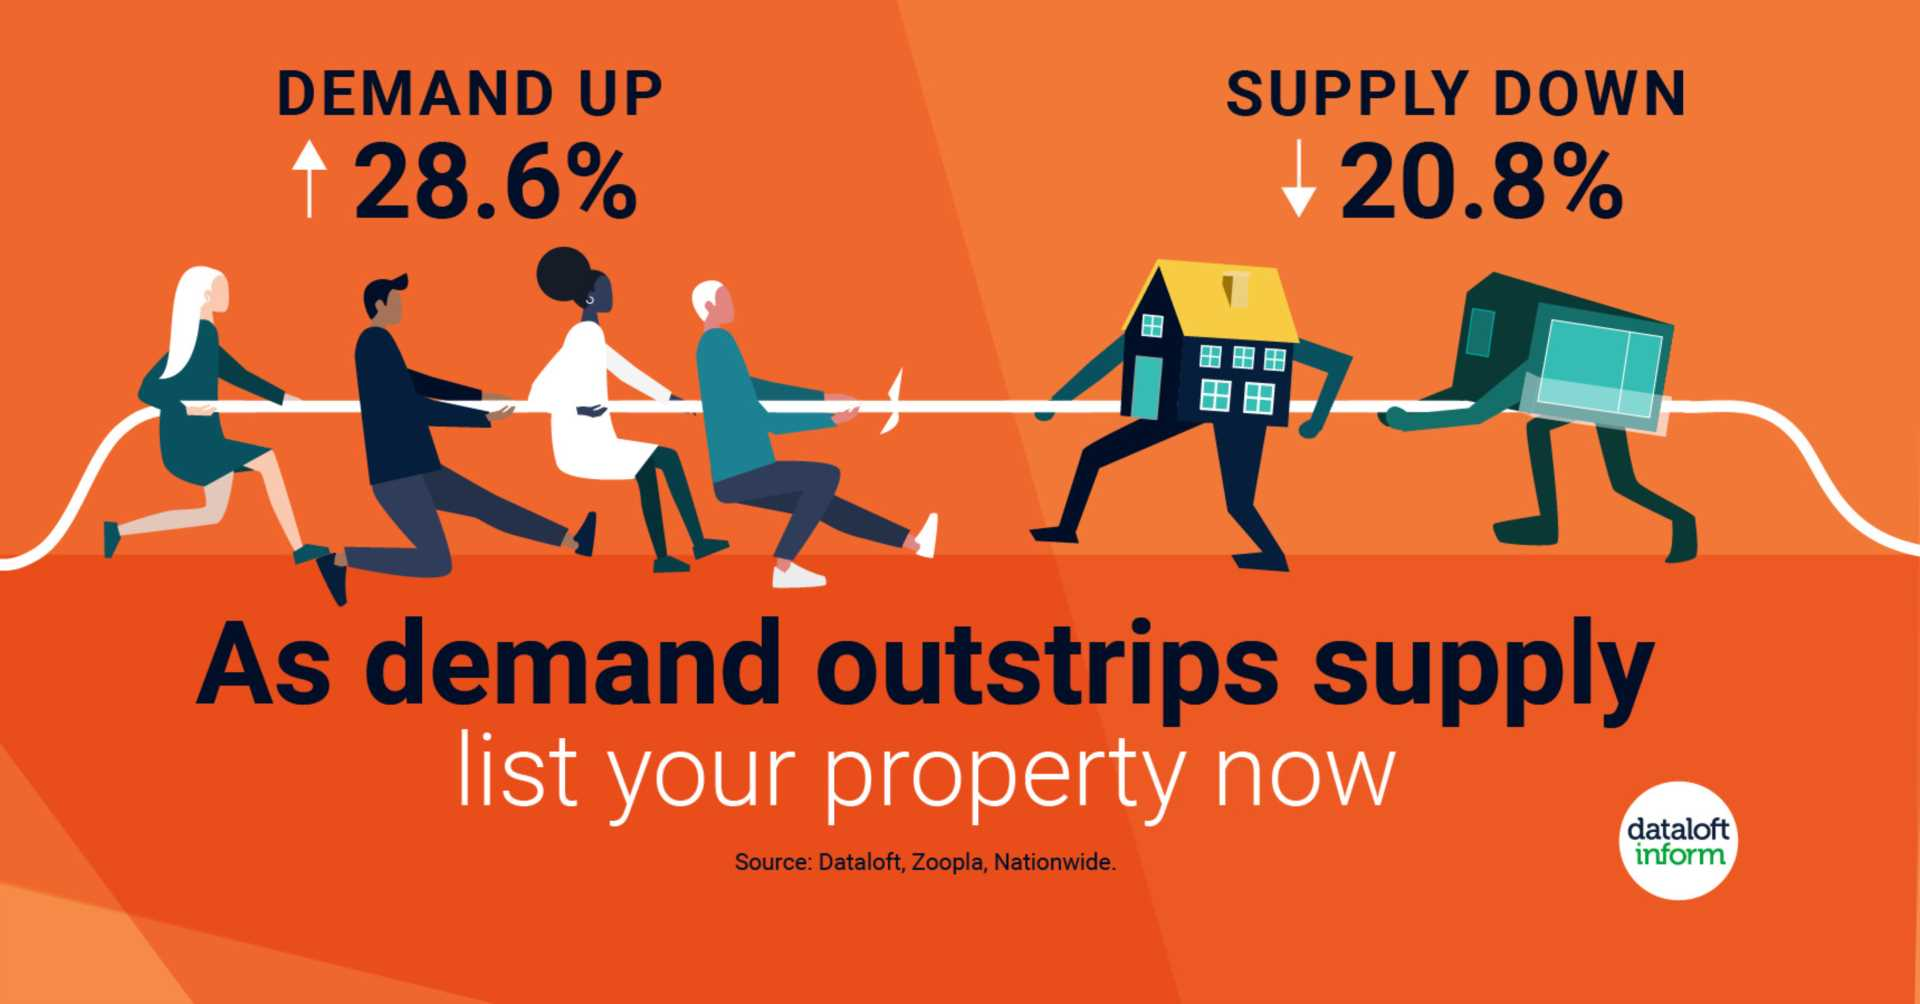 Demand continues to outstrip supply - LIST YOUR PROPERTY NOW!